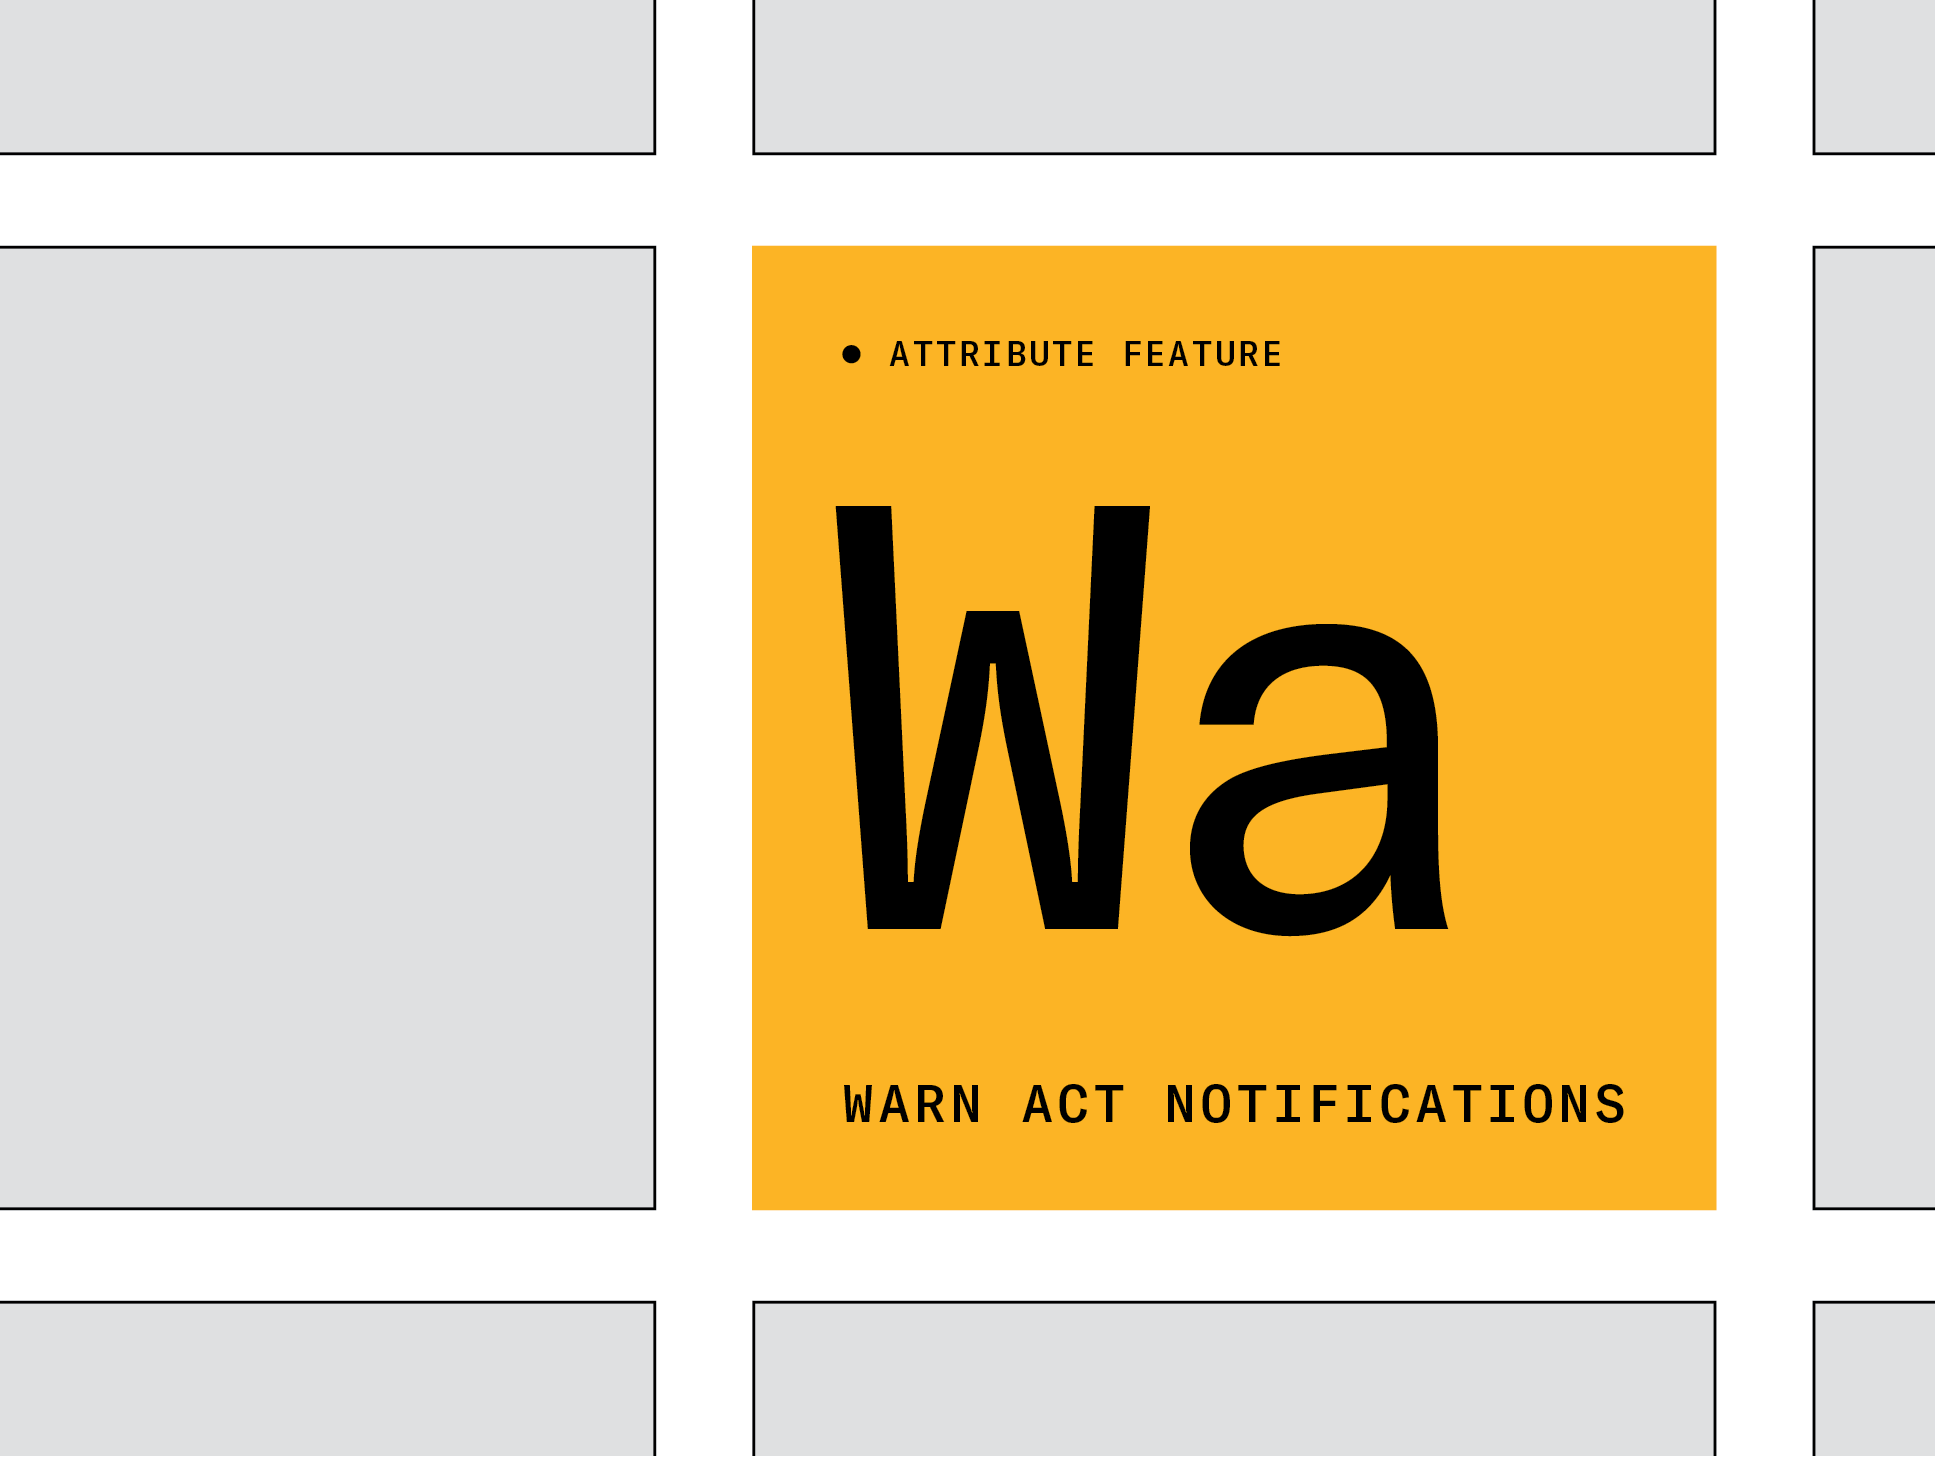 WARN Act Blog - Thumbnail